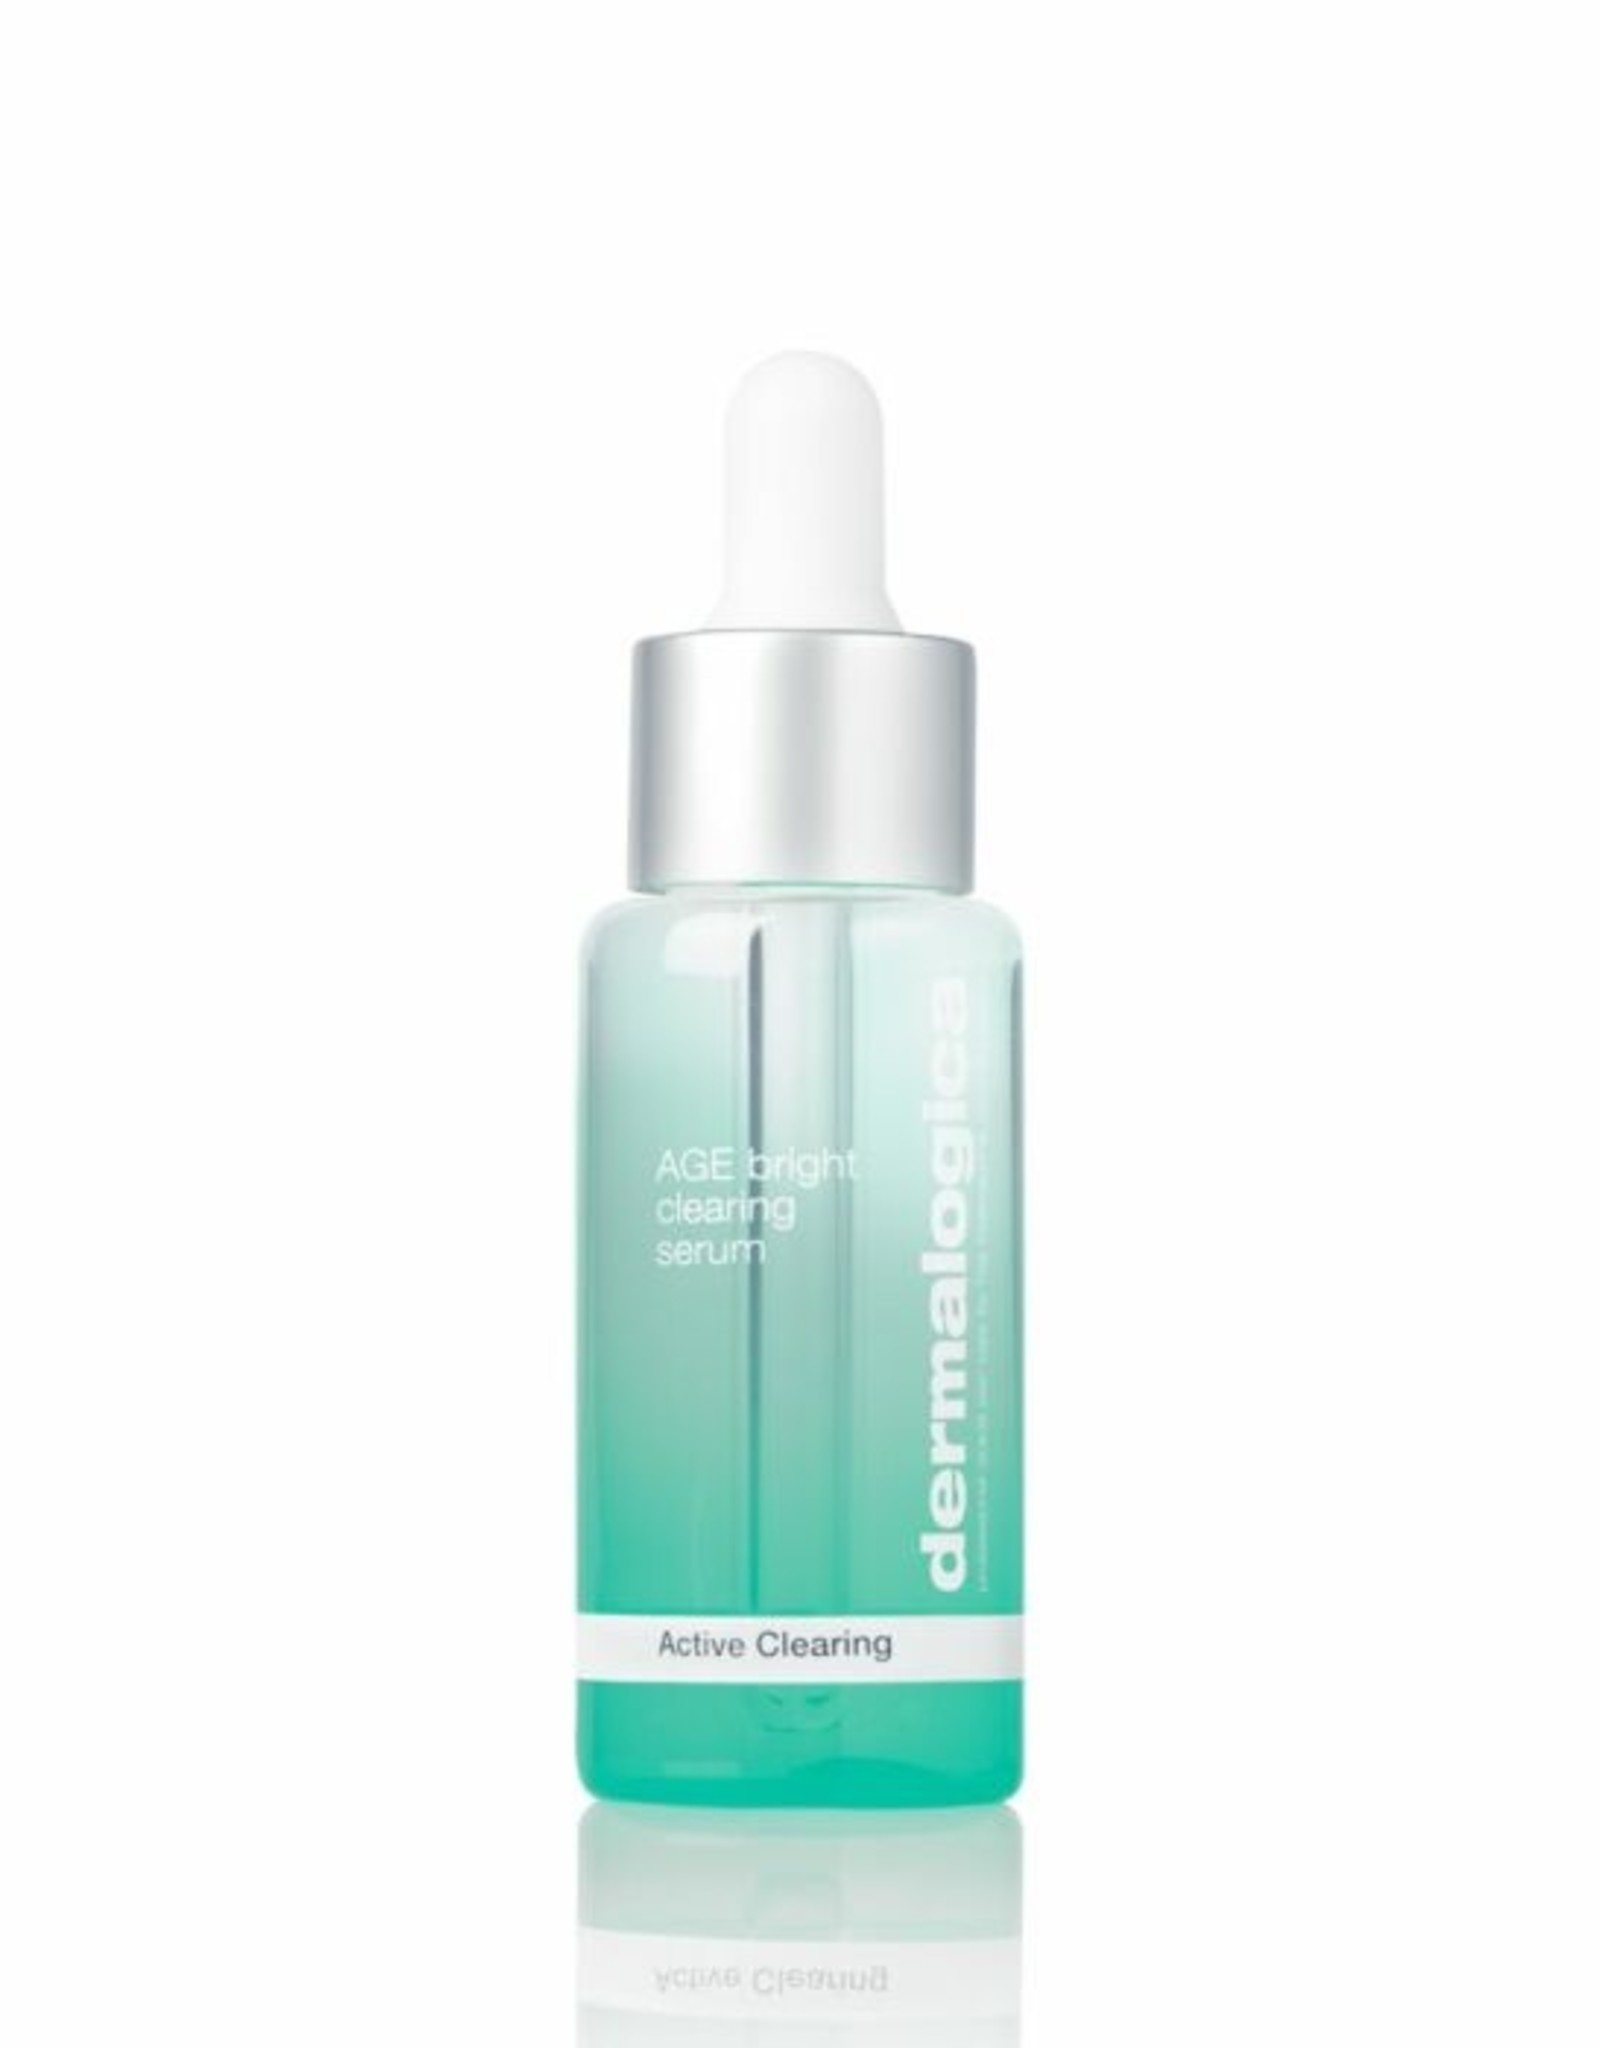 Dermalogica Active Clearing - Age Bright Clearing Serum 30ml - Dermalogica